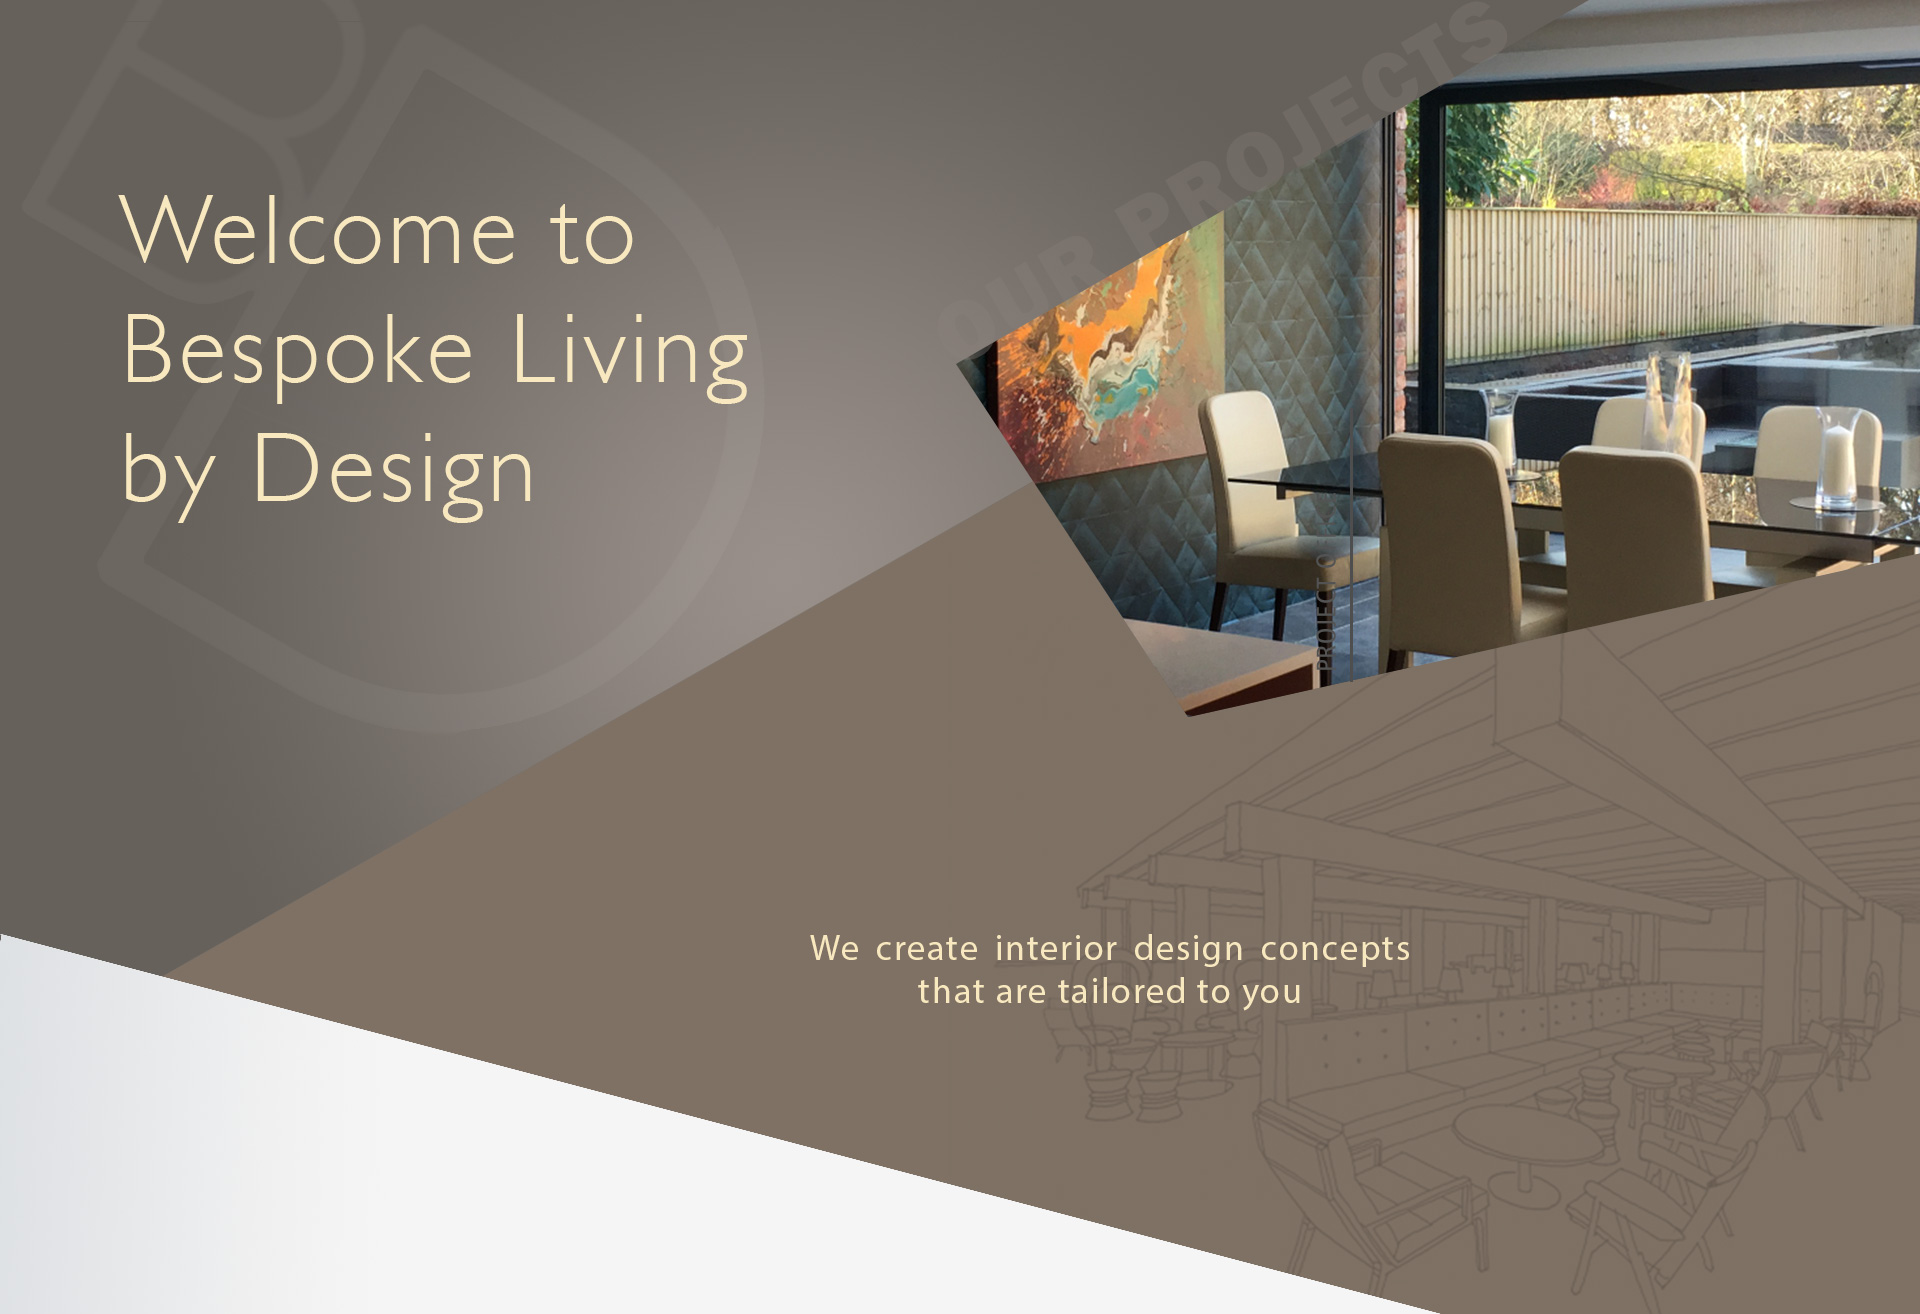 Interior design consultant bespoke interior design for Design consultancy